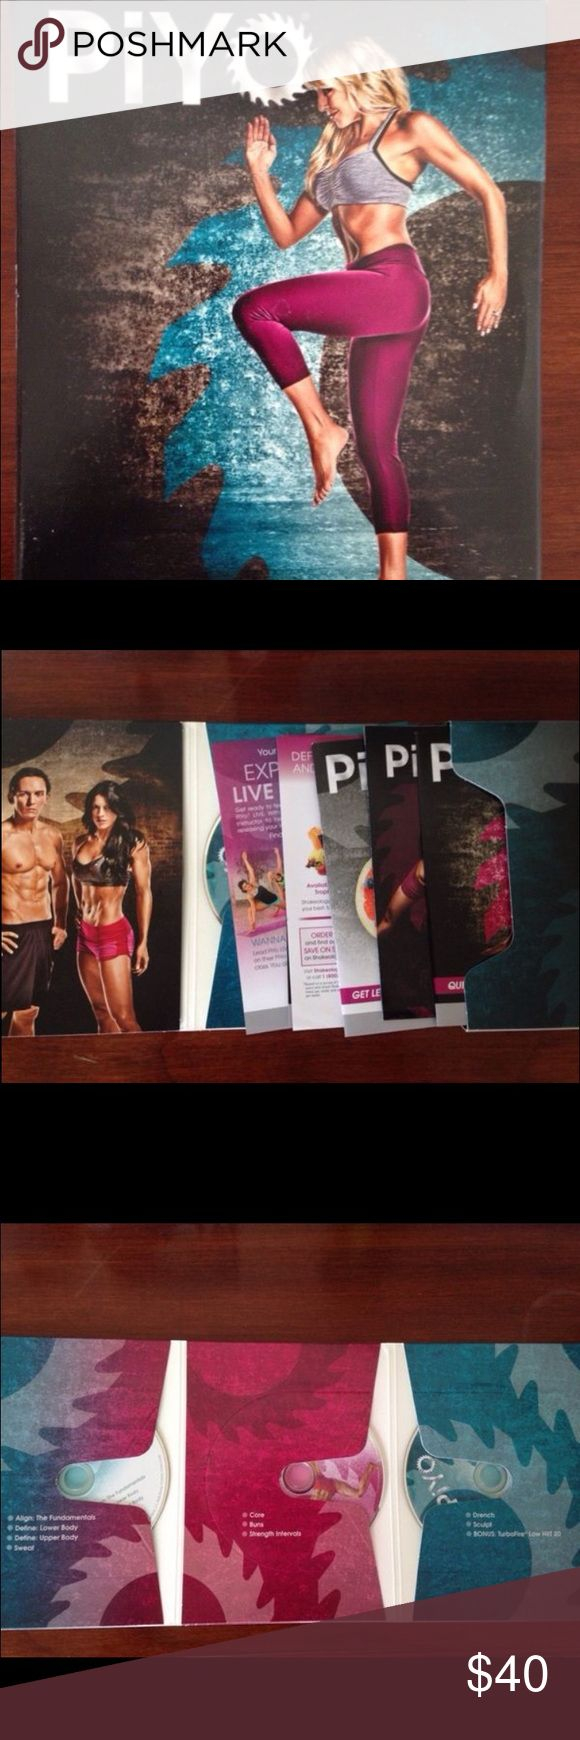 PIYO Workout DVD Never used, the BEACHBODY program gets you in shape fast! I bought it for $59.85 but selling it for a great price. Other